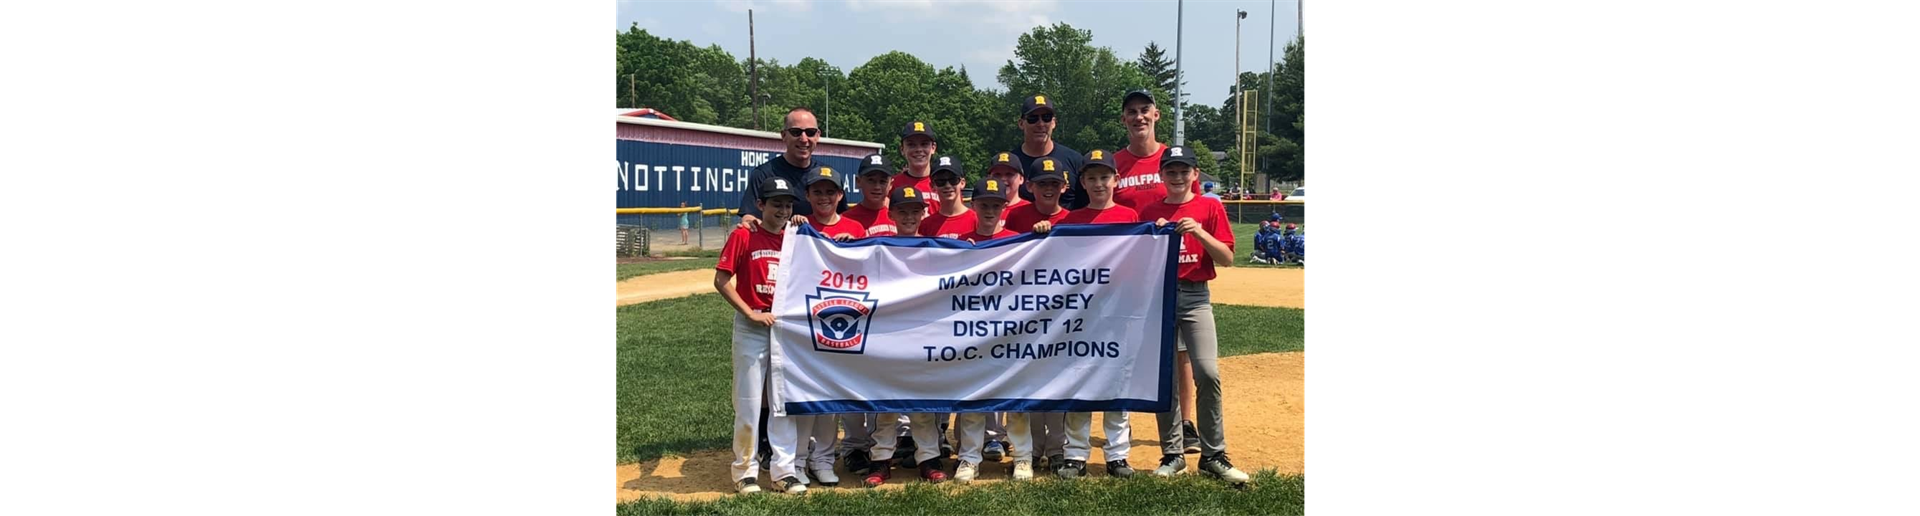 2019 Majors Division Tournament of Champions Winners